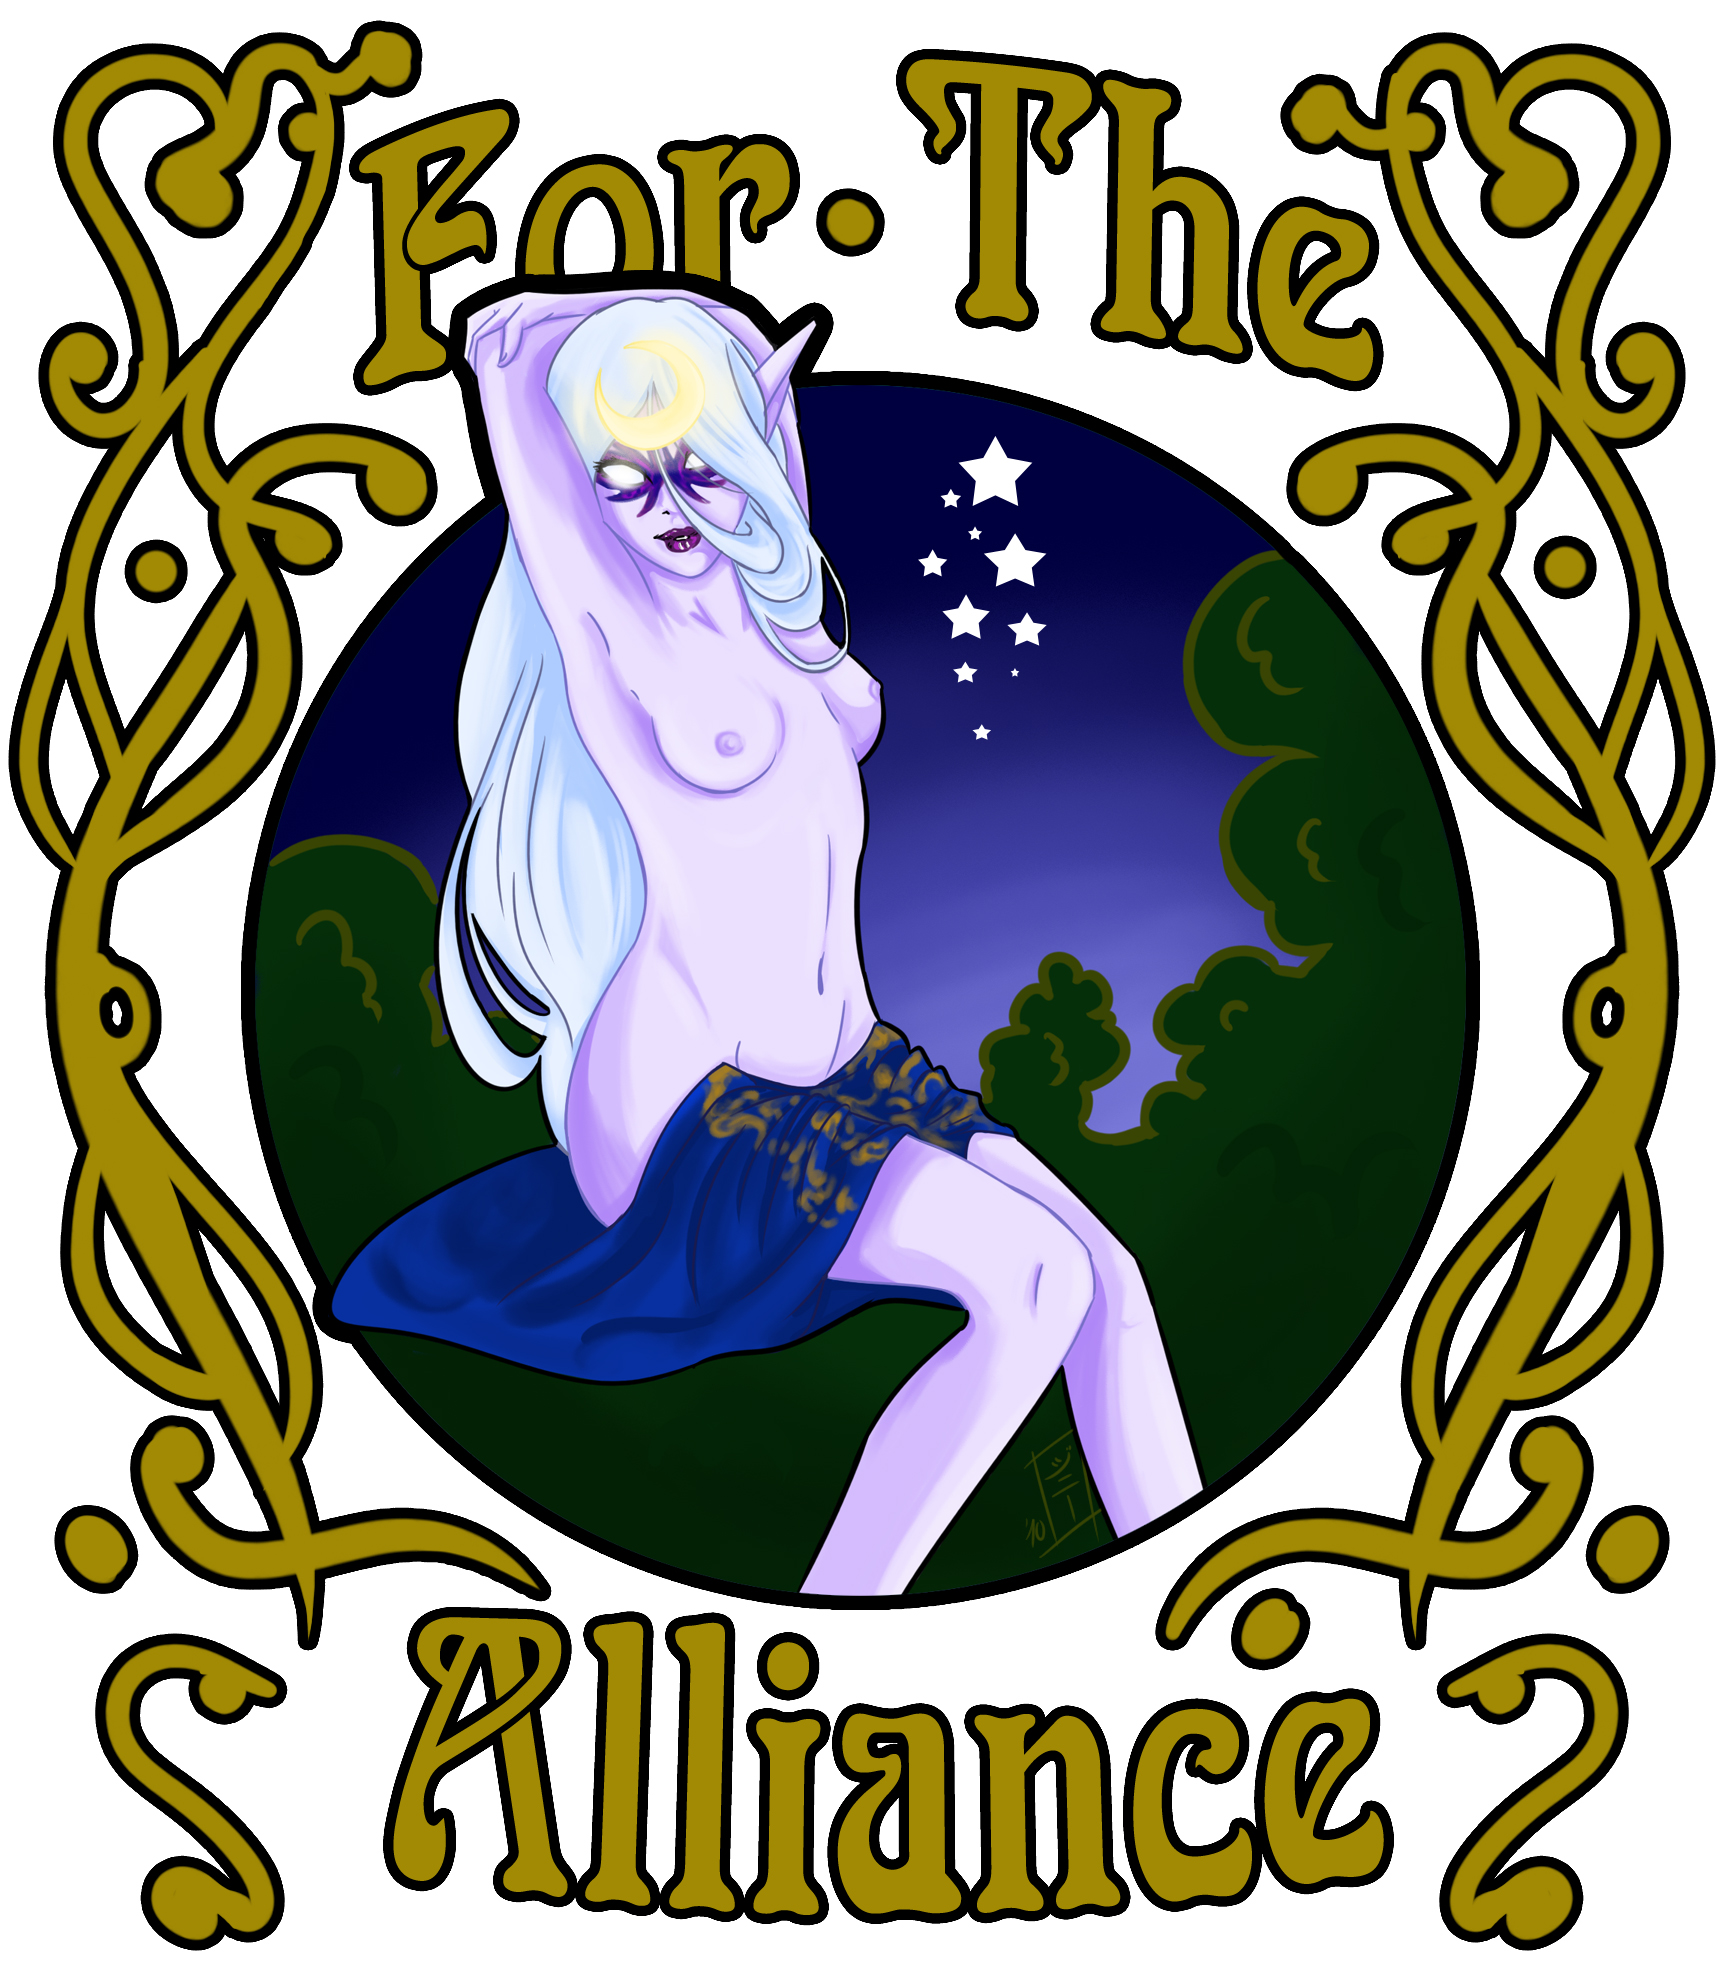 For the Alliance redux